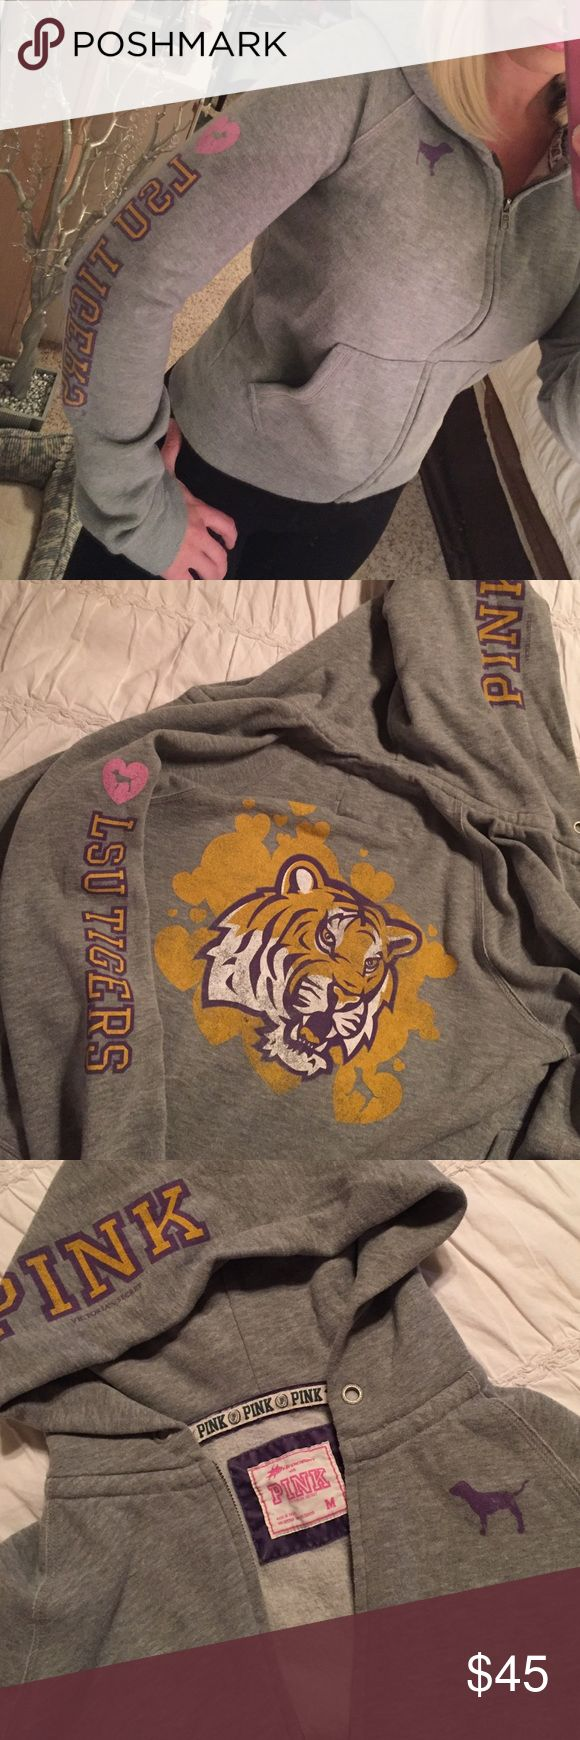 Victoria's Secret Pink LSU sweatshirt medium Rare LSU Victoria's Secret Pink sweatshirt. Medium. So comfortable. Smoke free pet free home. Bundle and save. PINK Victoria's Secret Jackets & Coats